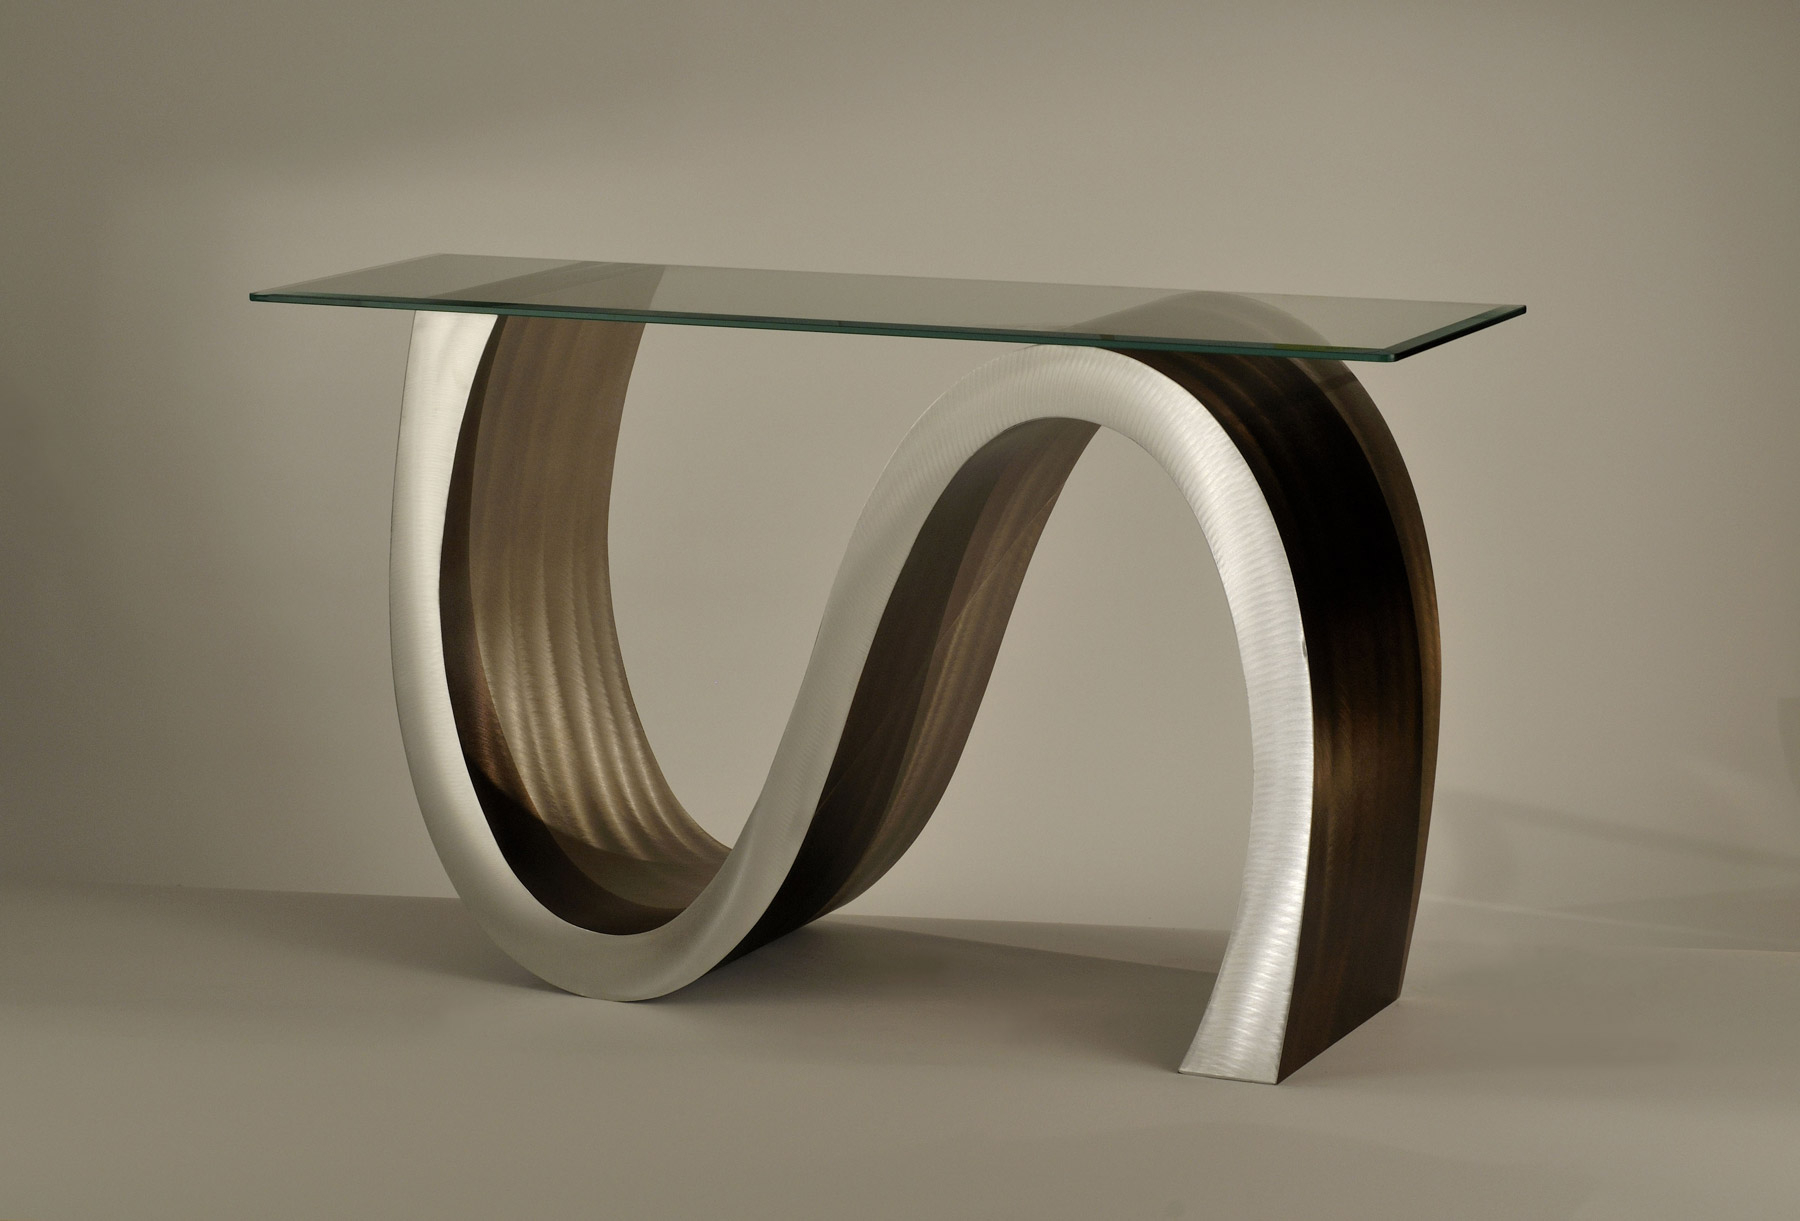 Sofa Table: Appealing Contemporary Sofa Table Design Skinny Console Intended For Parsons Clear Glass Top & Elm Base 48x16 Console Tables (View 21 of 30)